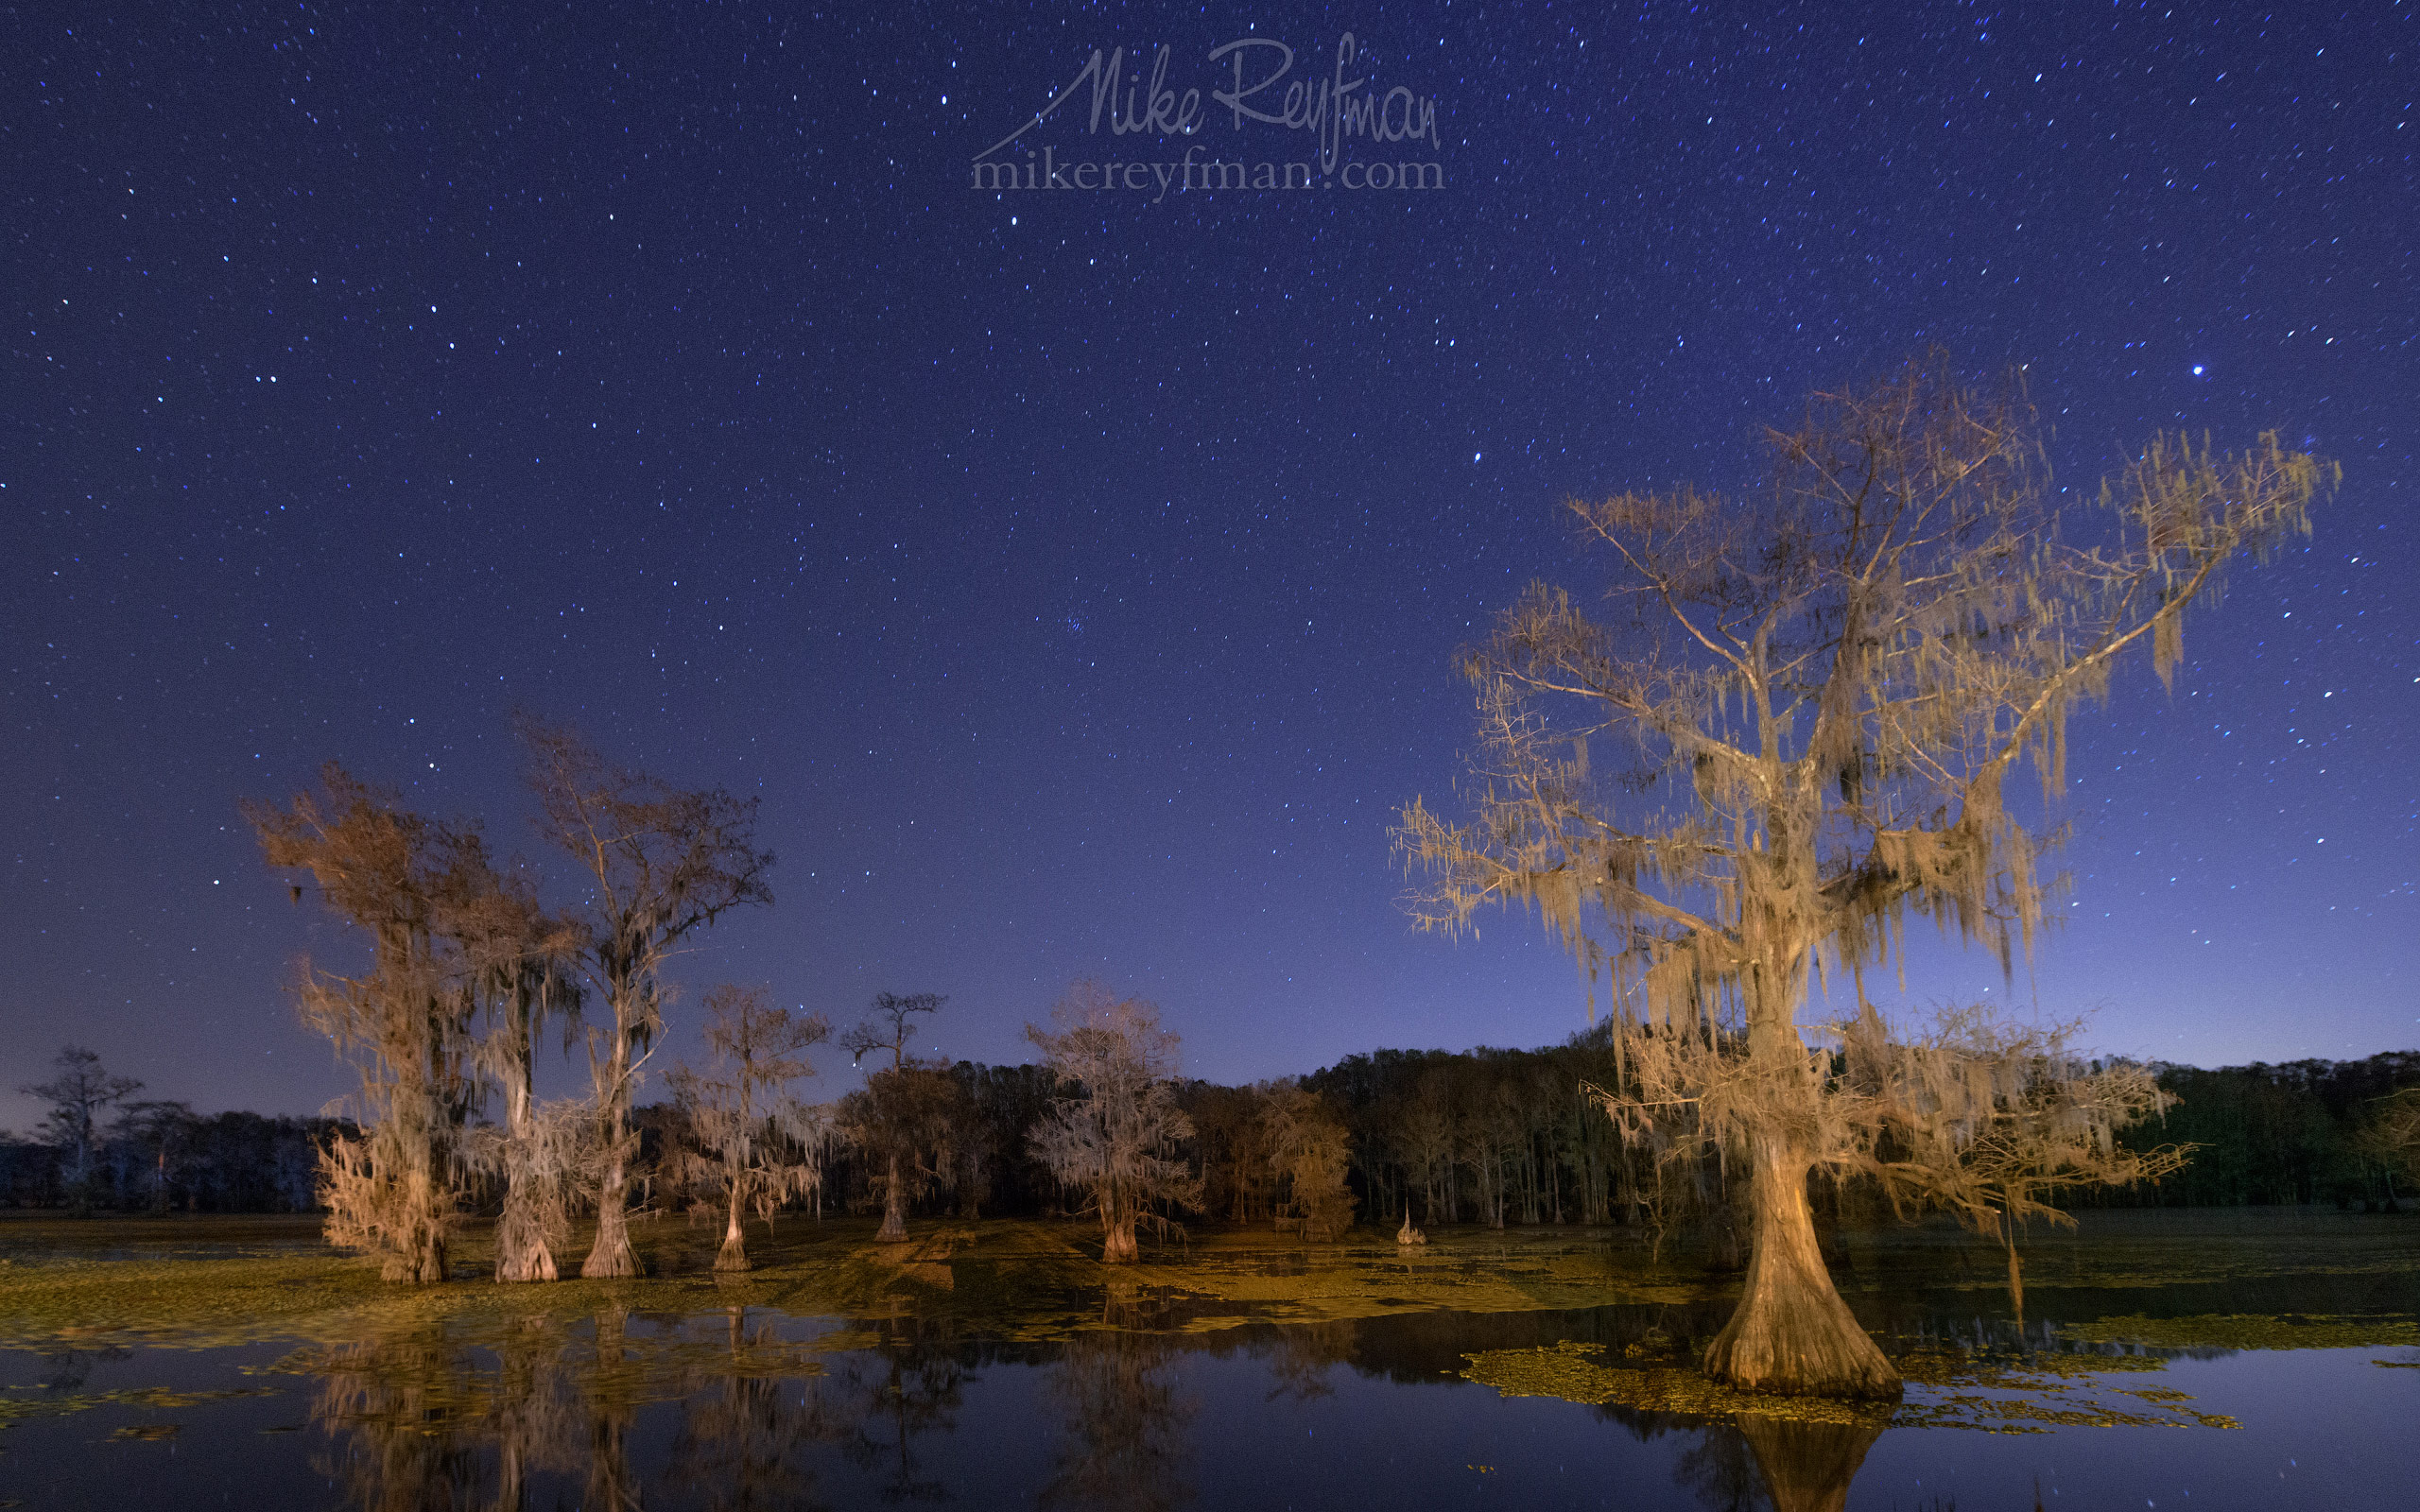 Bald Cypress trees in the swamp under stary sky. Shady Glade on Caddo Lake, Uncertain, Texas, US 058-LT1-50A3196.jpg - Bold Cypress and Tupelo Trees in the swamps of Atchafalaya River Basin. Caddo, Martin and Fousse Lakes. Texas/Louisiana, USA. - Mike Reyfman Photography